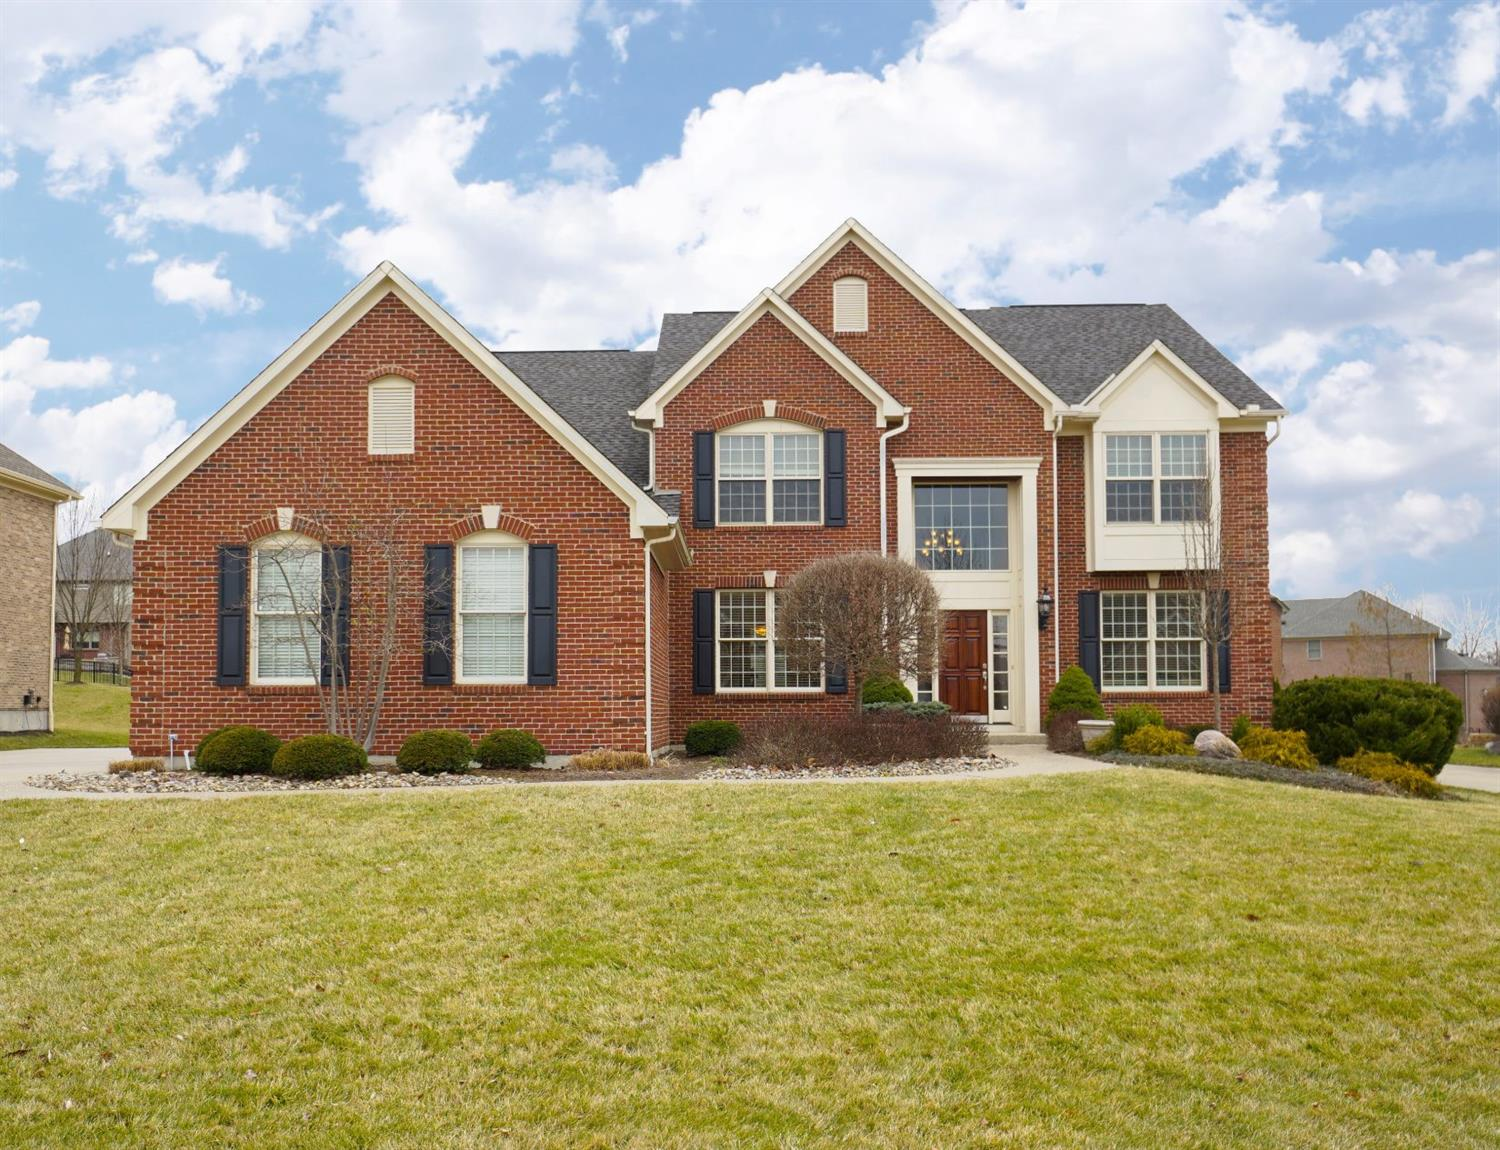 3894 The Ridings, Deerfield Twp., OH 45040